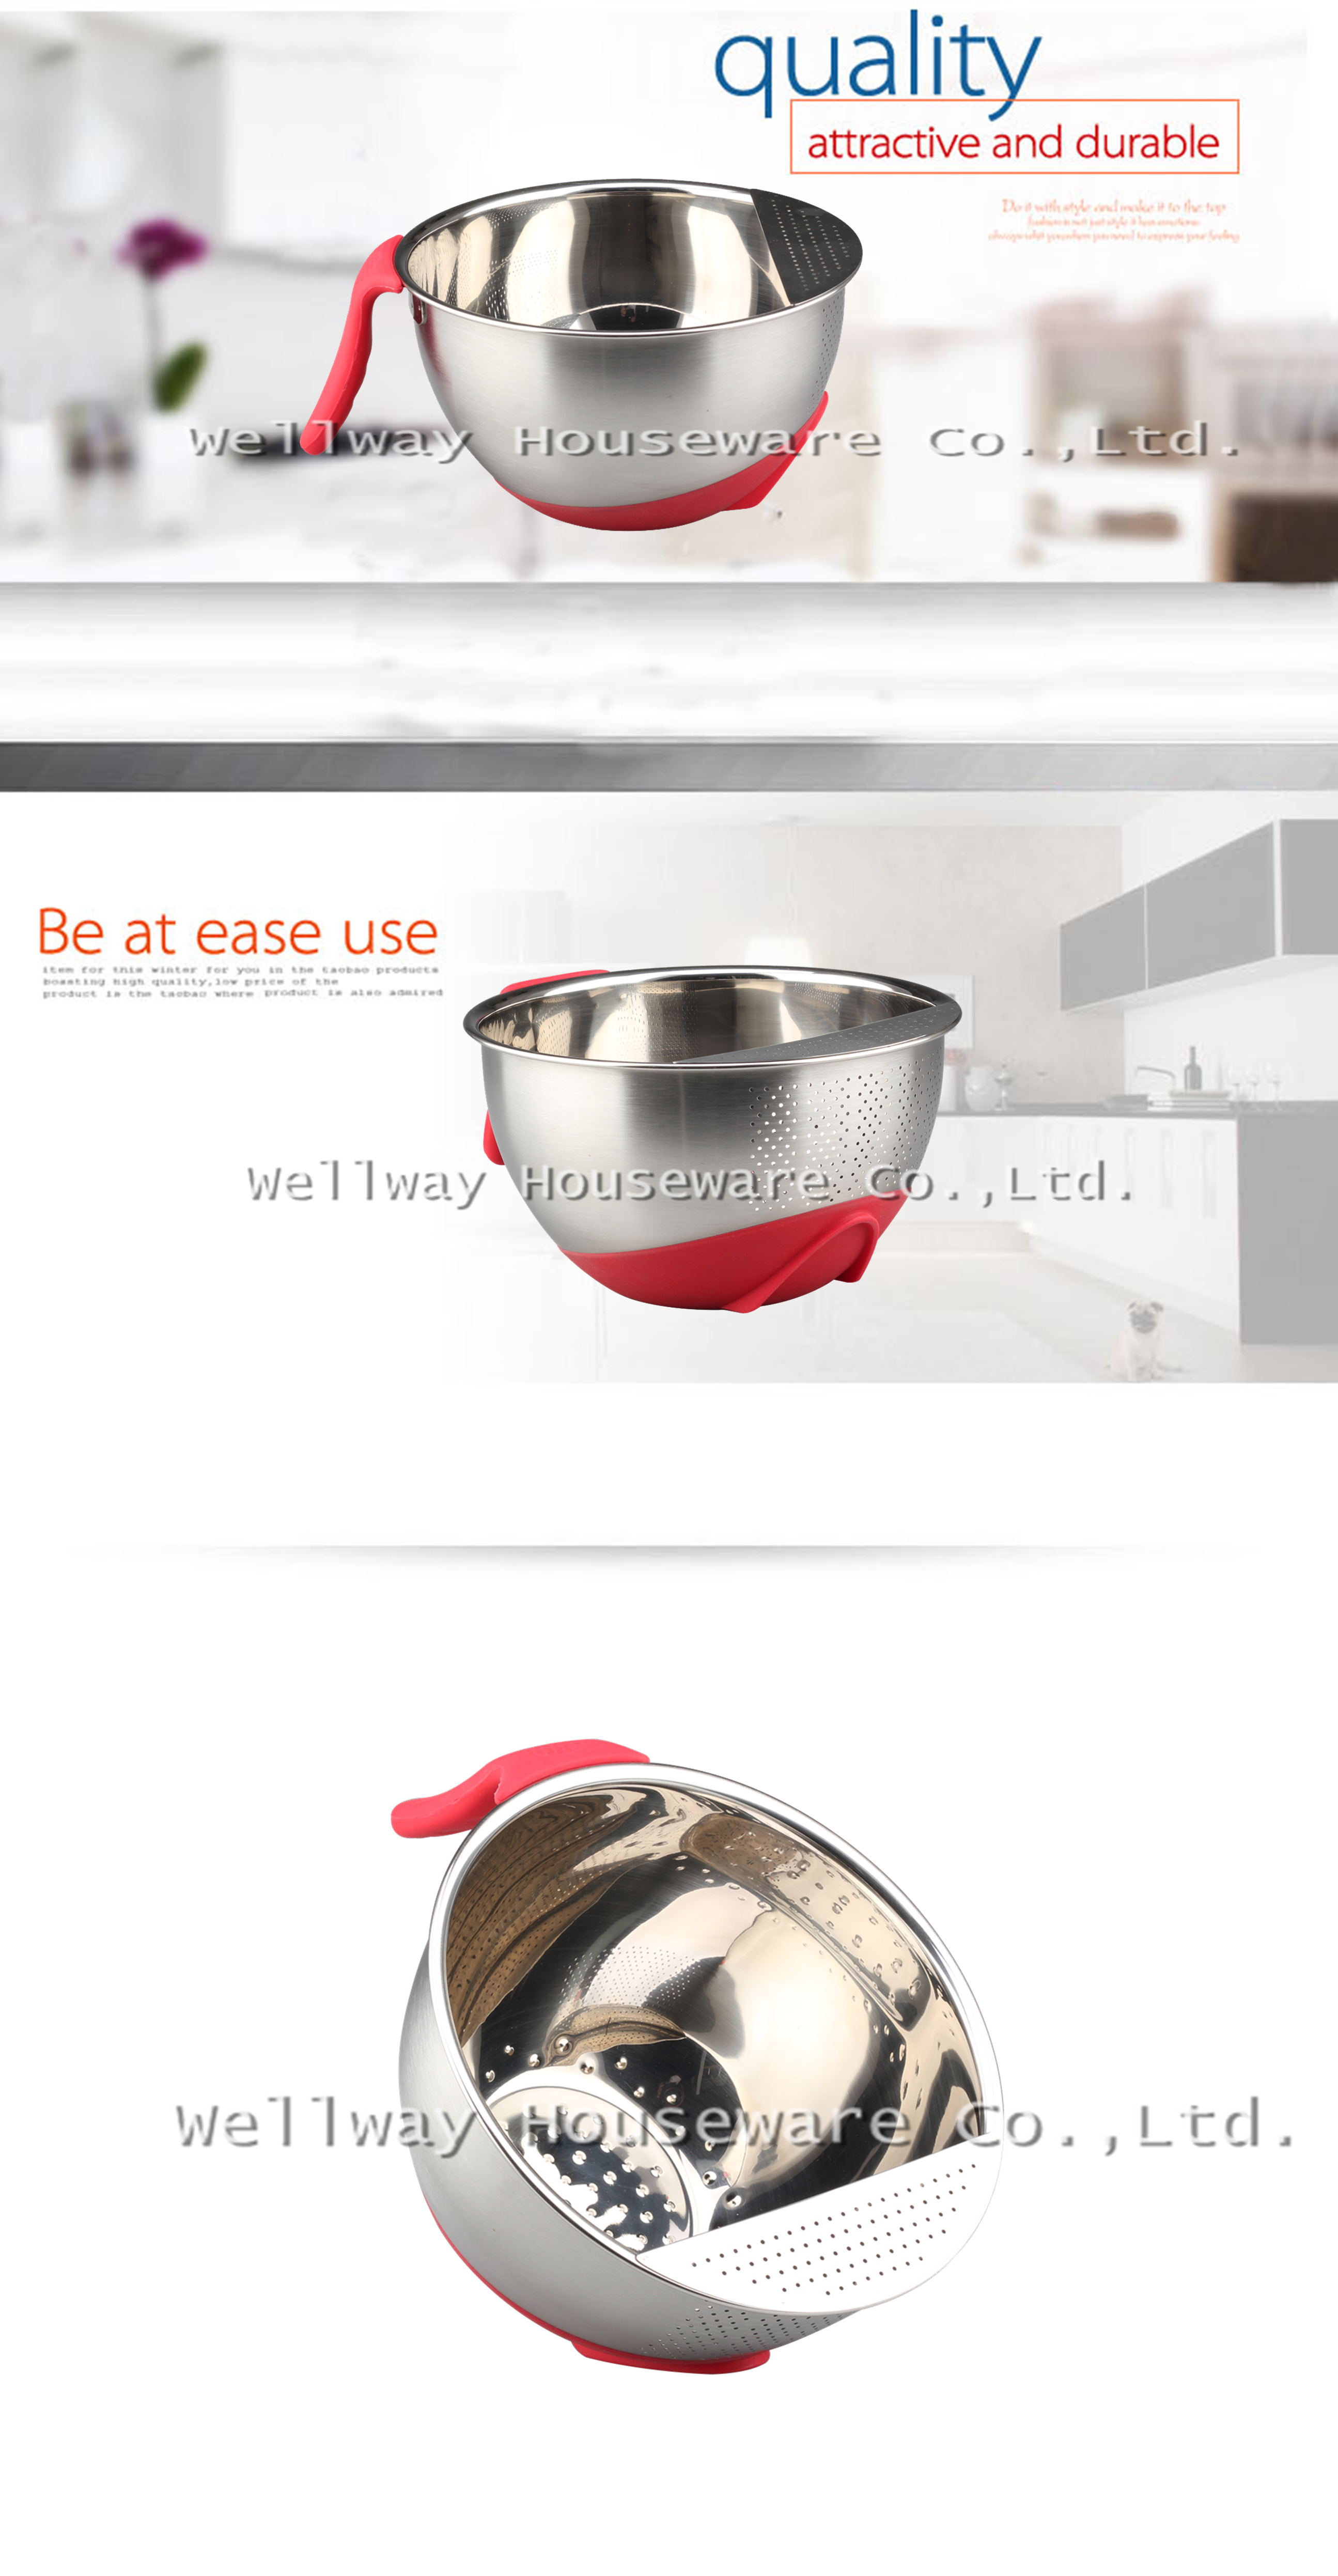 Stainless Steel Rice Washing Bowl WIth Non-slip Base Long Handle Fruit & Rice Washing Bowl Kitchen Strainer With Side Drainers